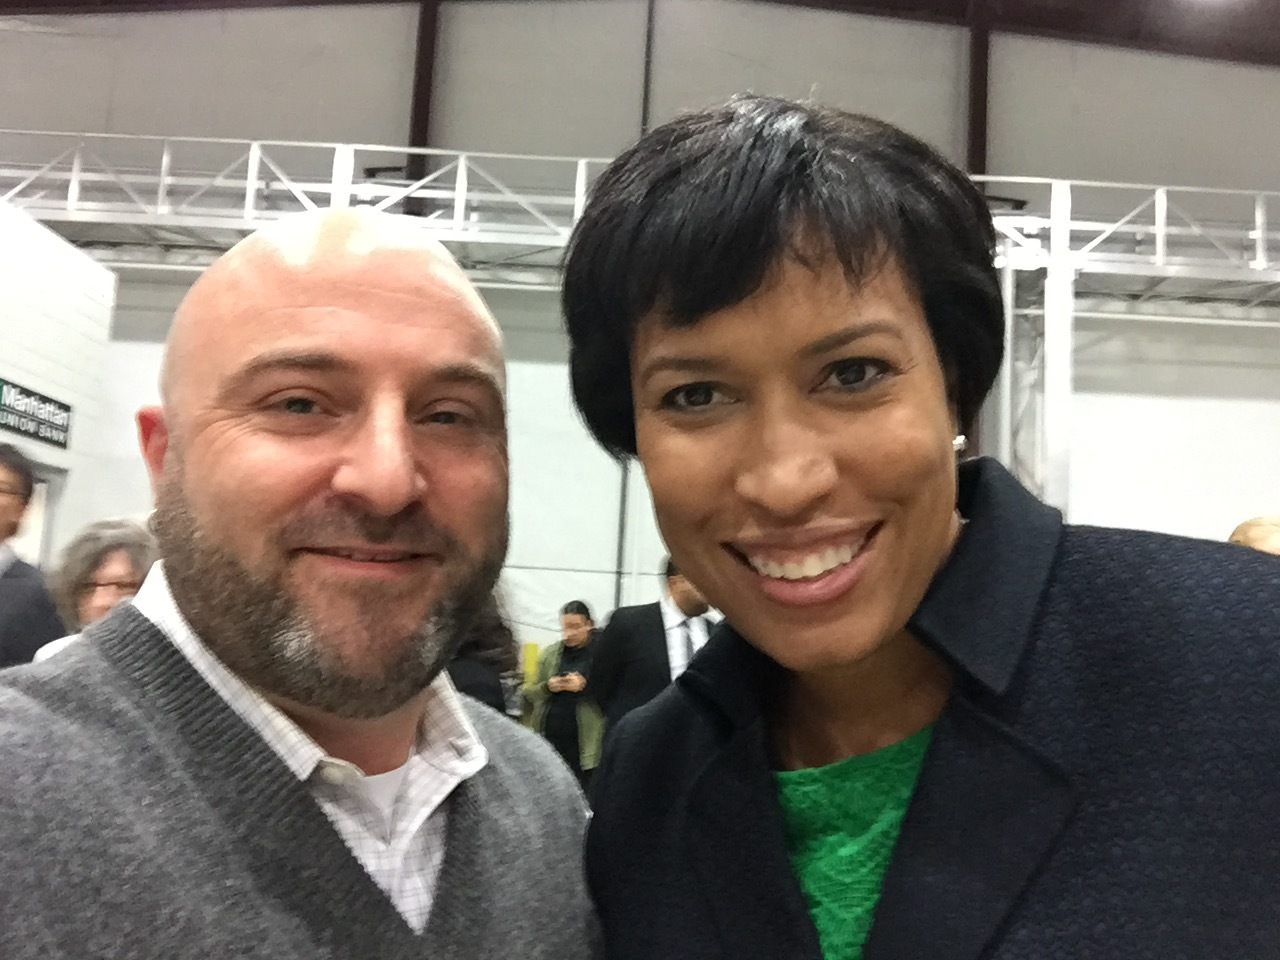 DC Mayor Muriel Bowser poses for a selfie with Drew at the MPD Community Engagement Academy. December 2, 2015